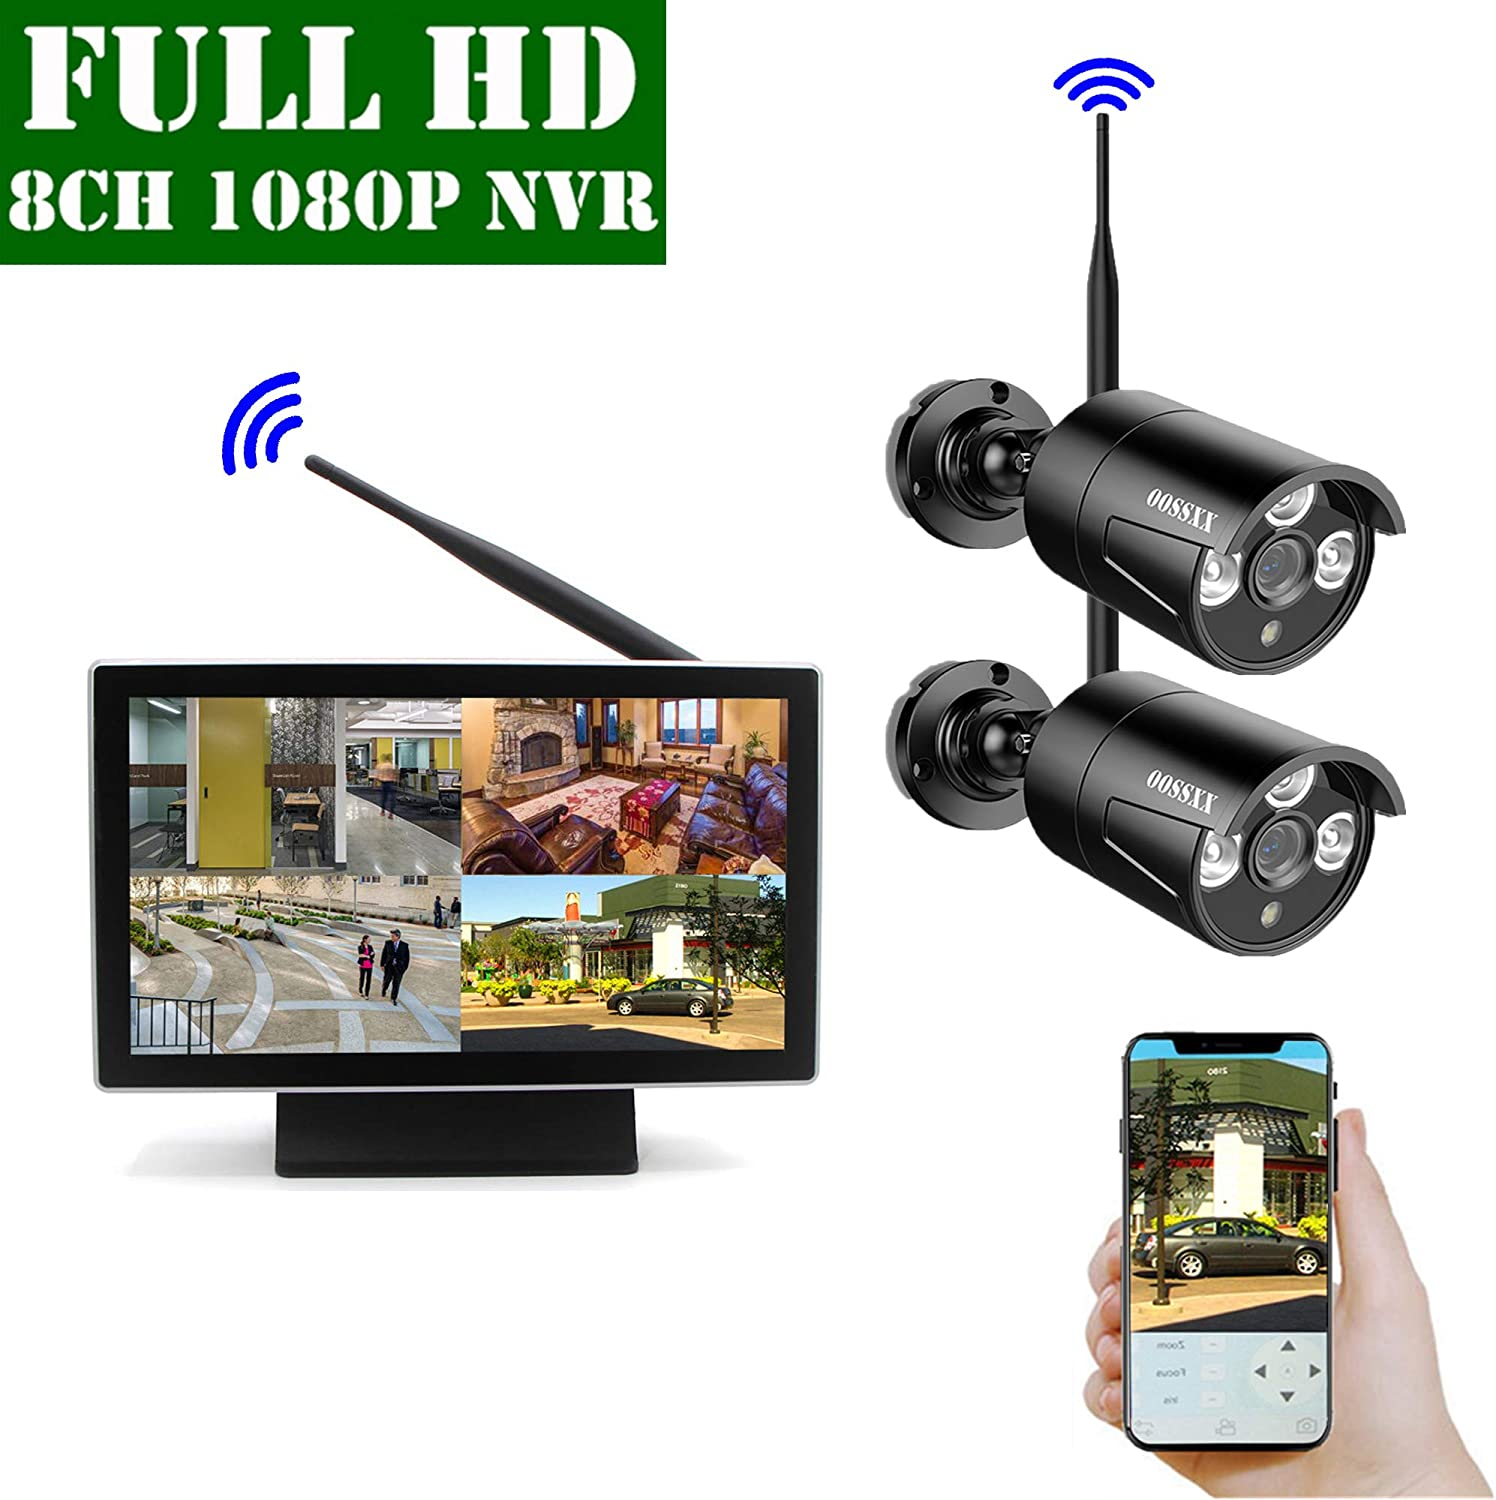 ANNKE Security Camera System 8 Channel 1080P Lite H.264 DVR and 8 1080P Outdoor Fixed Weatherproof Cameras, QR Code Scan to Remote View, Email Alert with Snapshots-NO Hard Drive